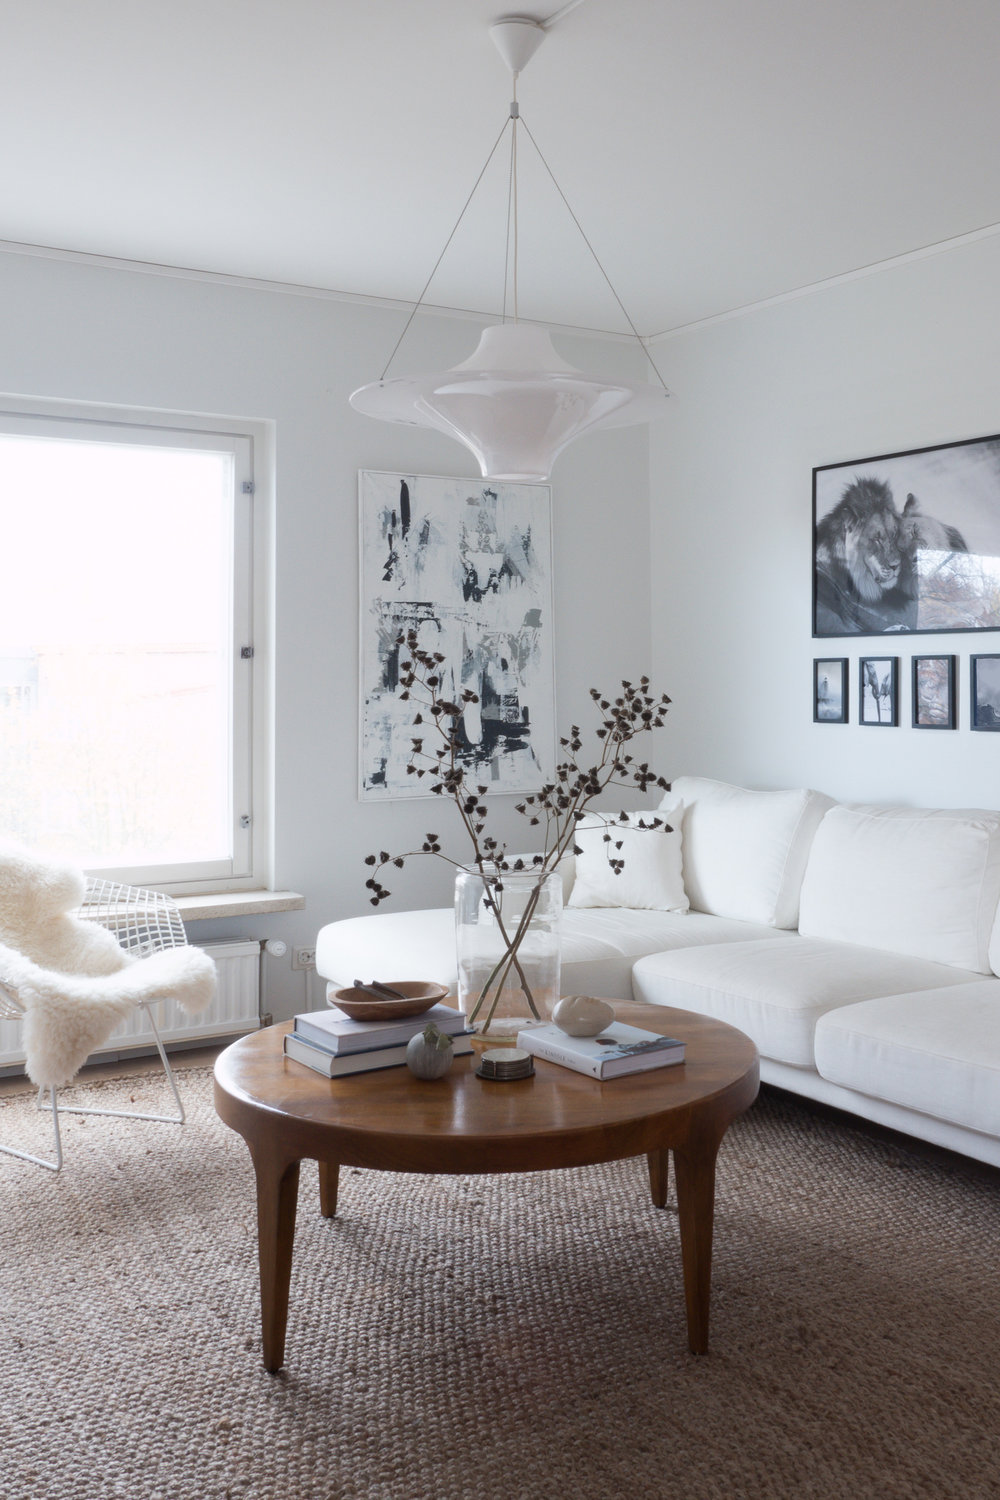 03 Neutral Living Room | Sofia Tuovinen Interior Design.jpg